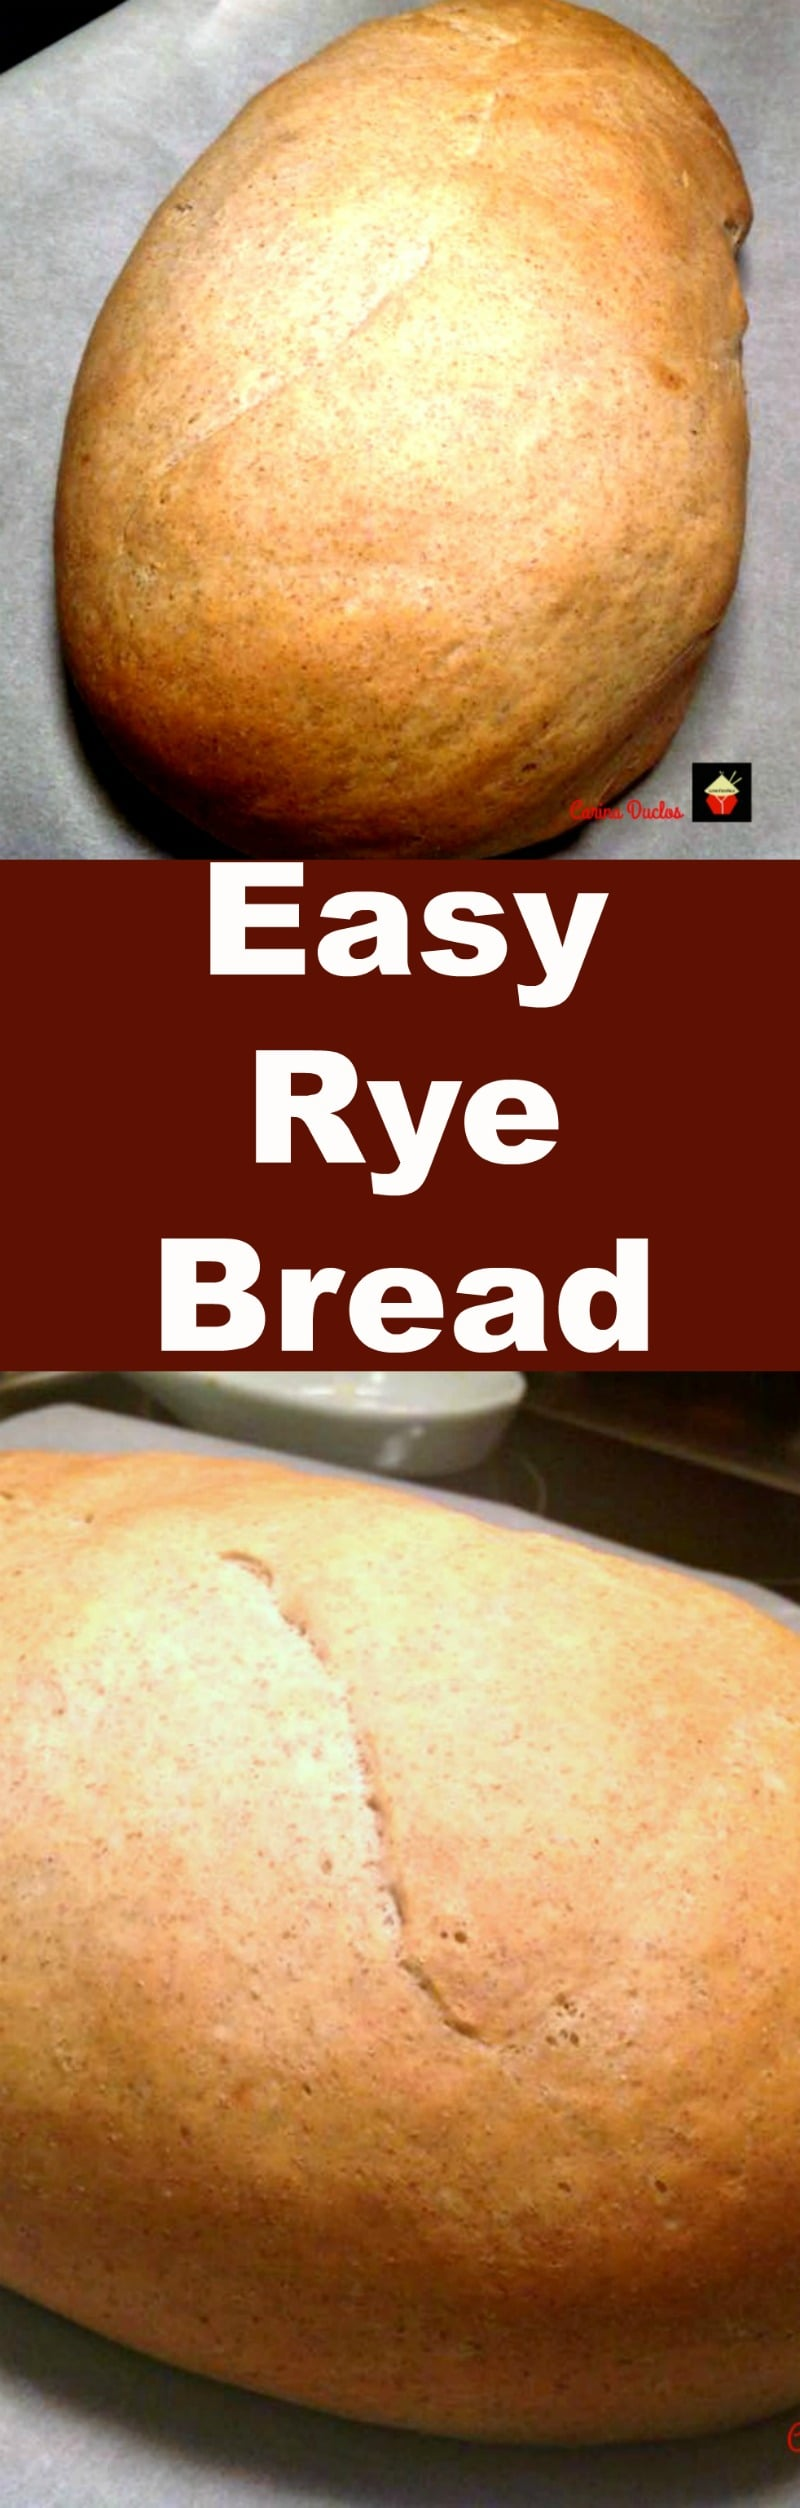 Easy Rye Bread. This is a lovely straightforward bread recipe for rye bread which gives you a soft bread texture. Great to eat on it's own or use for sandwiches. Freezer friendly too! | Lovefoodies.com